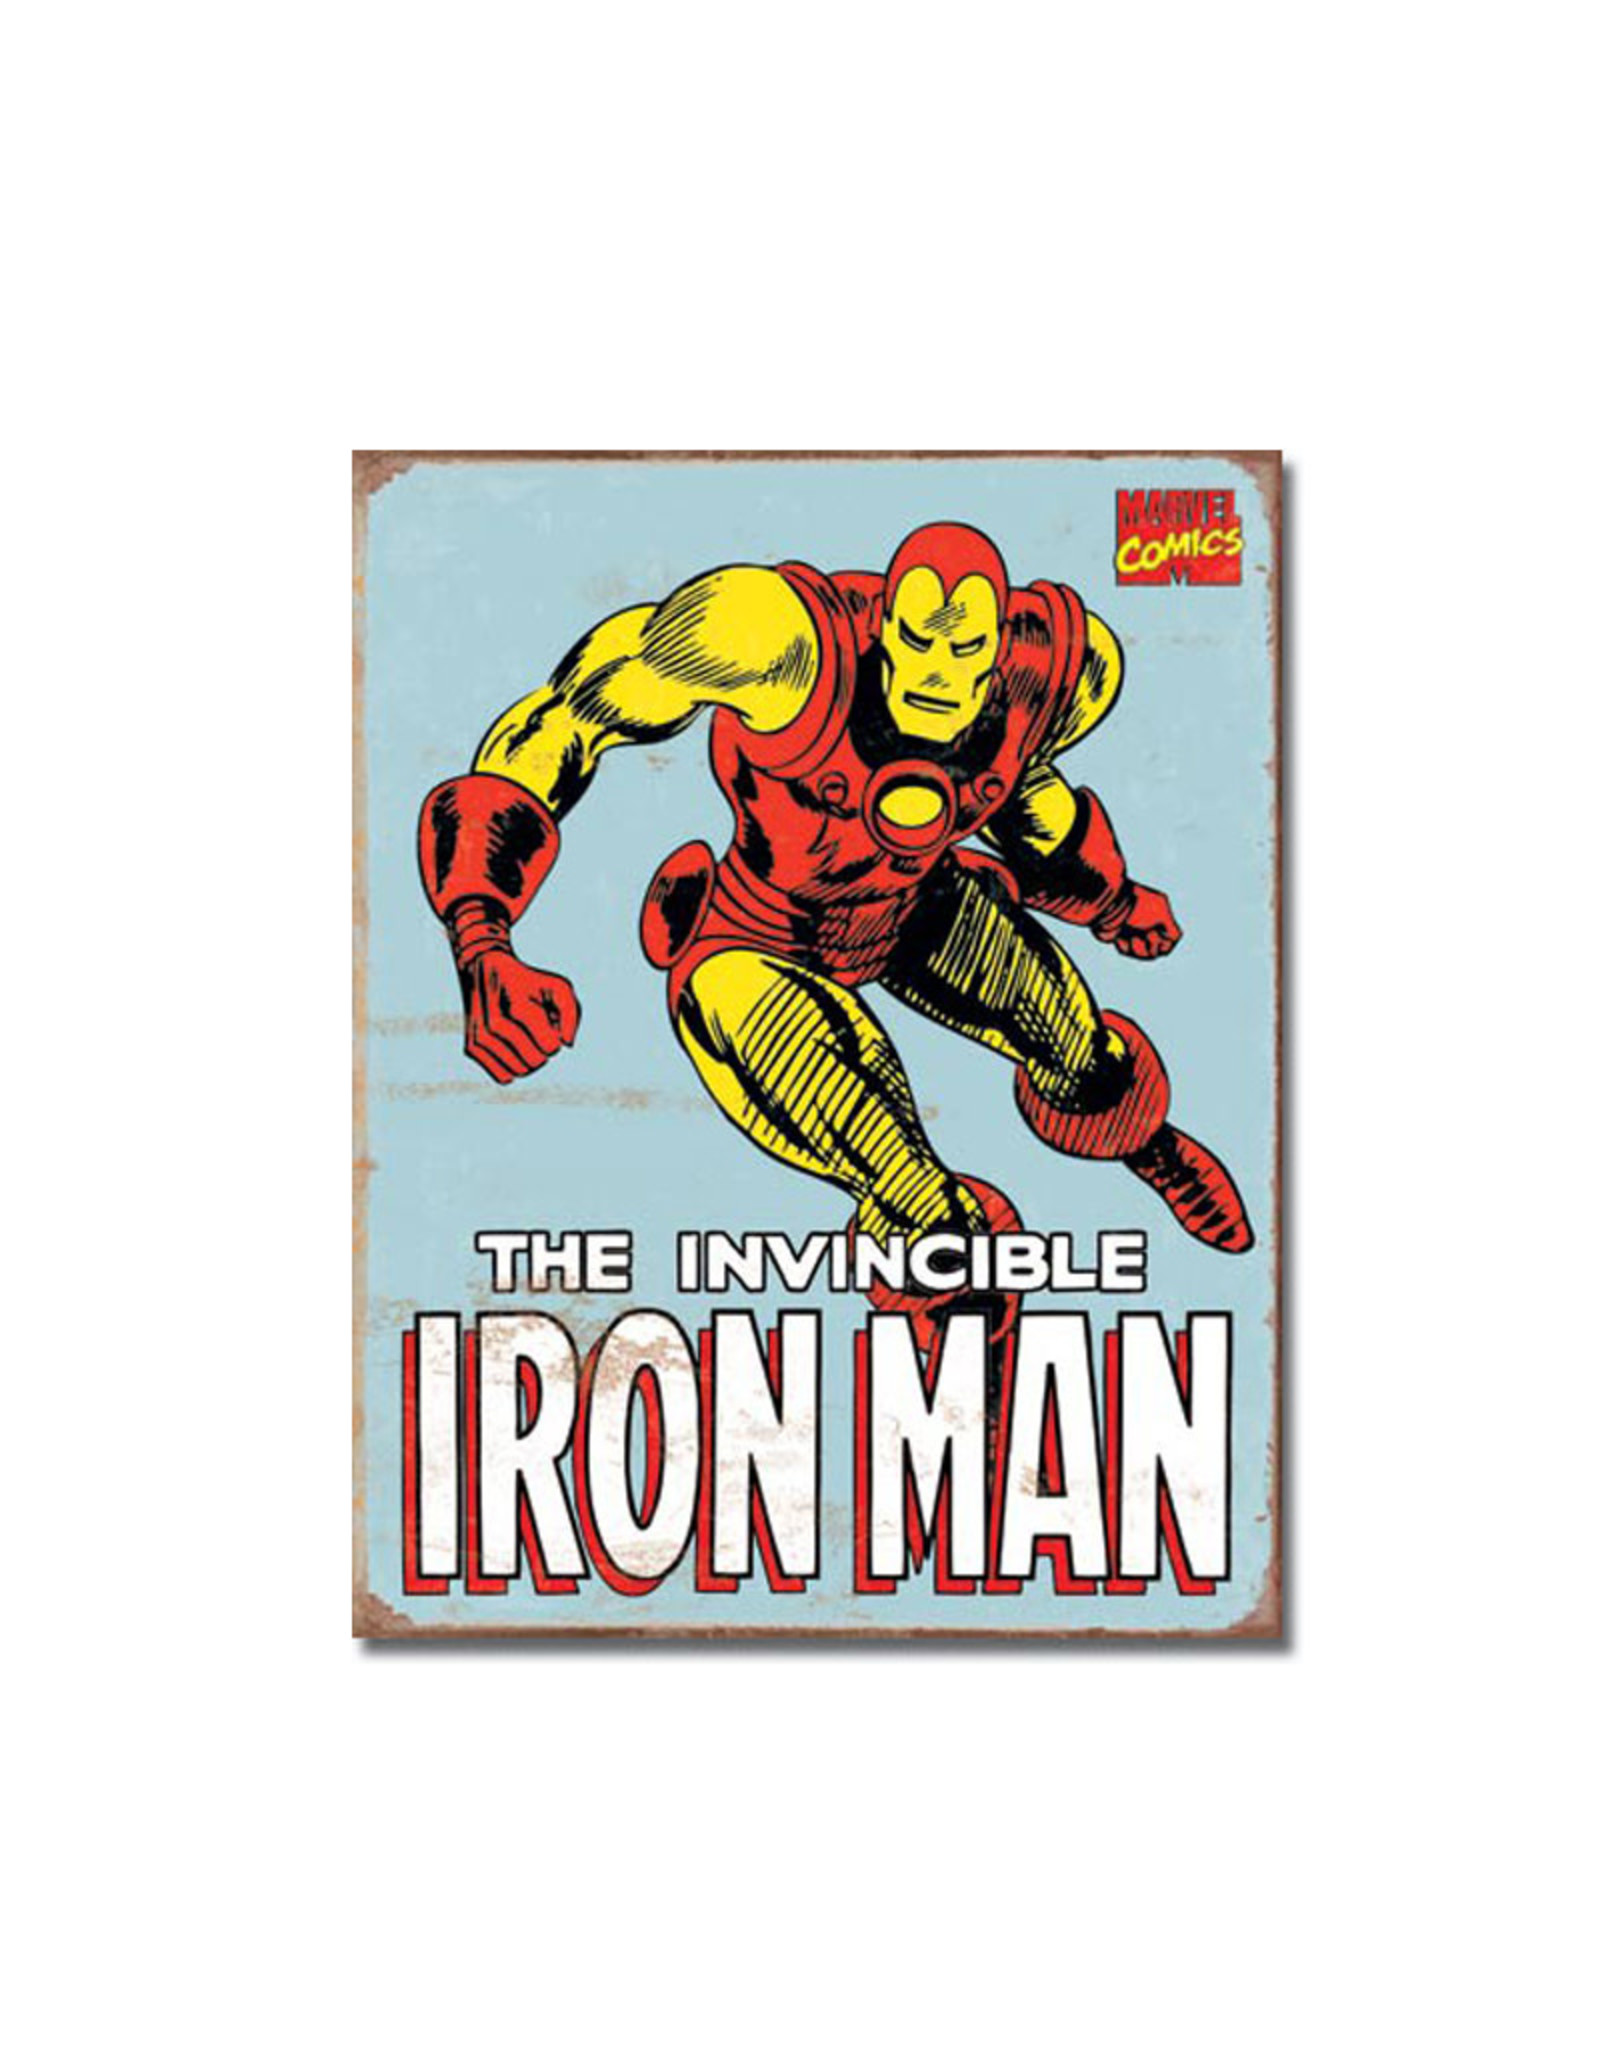 Marvel Marvel ( Metal Sign 12.5 X 16 ) Iron Man